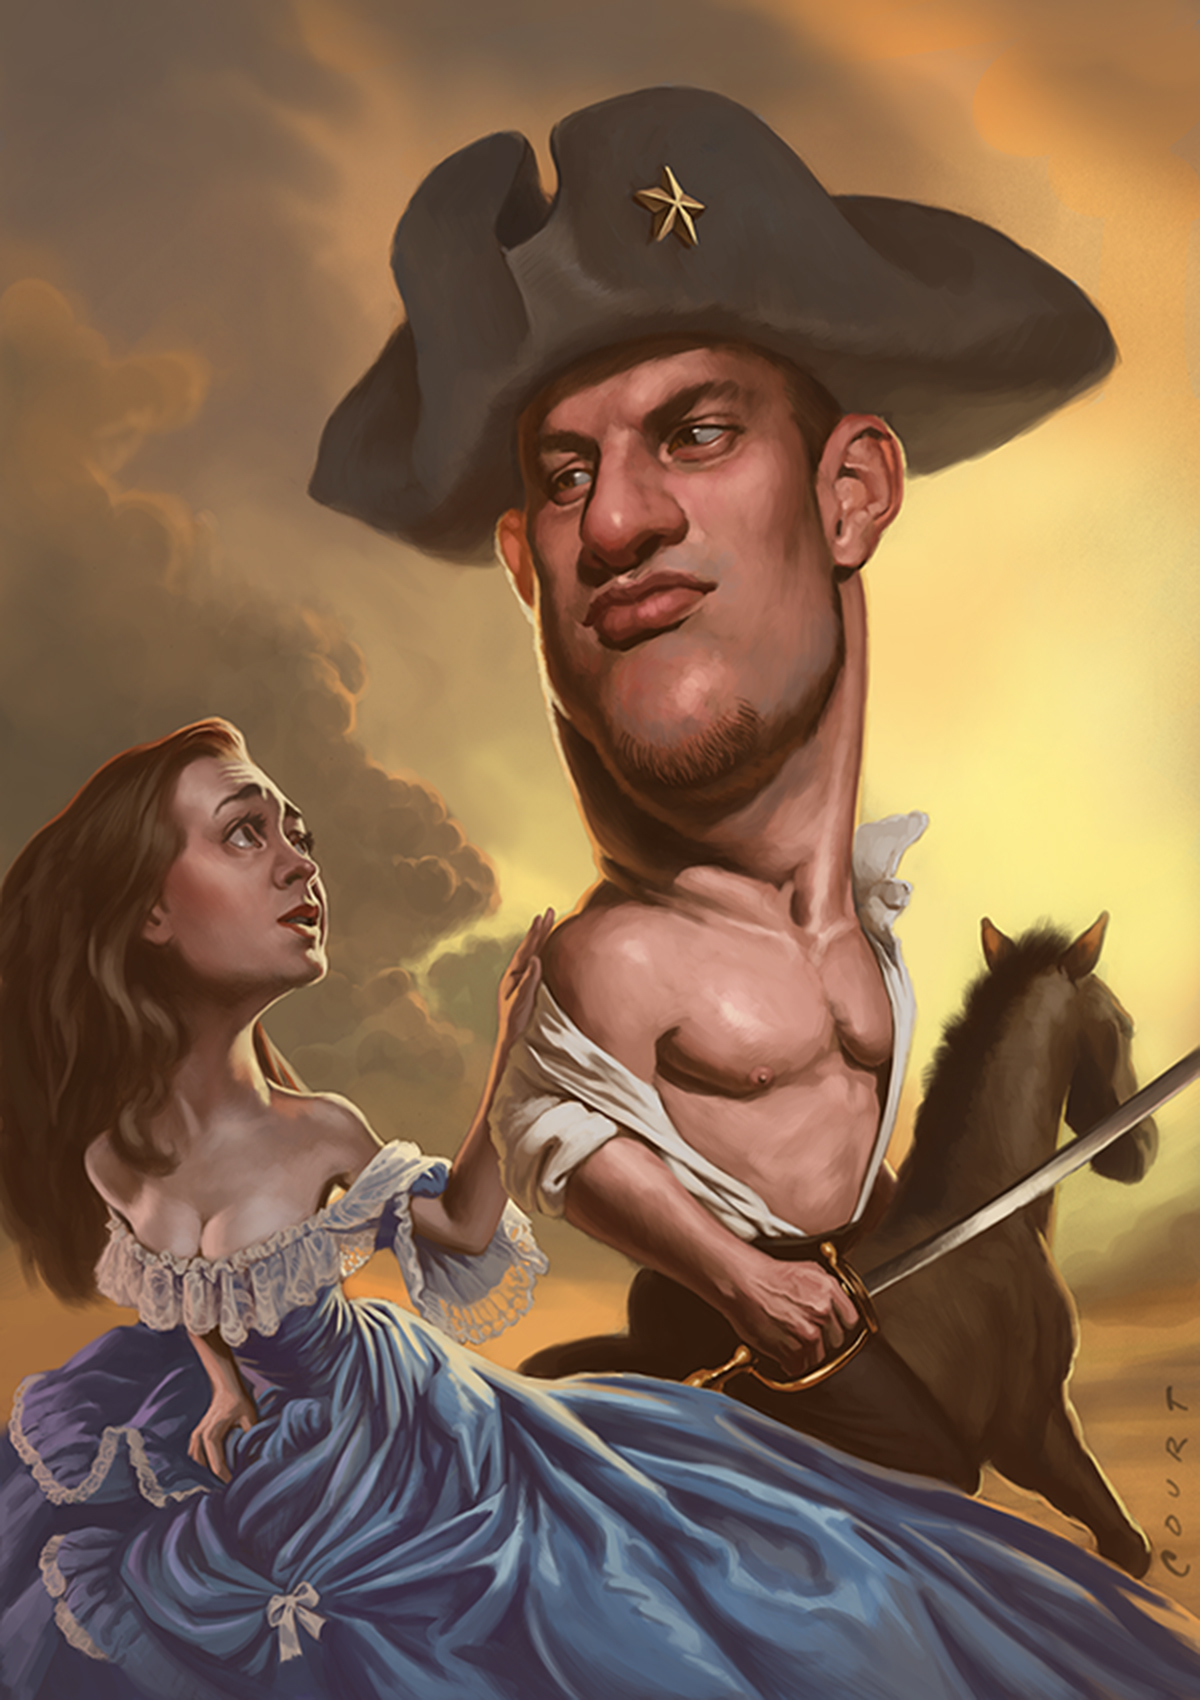 the gronk you're with